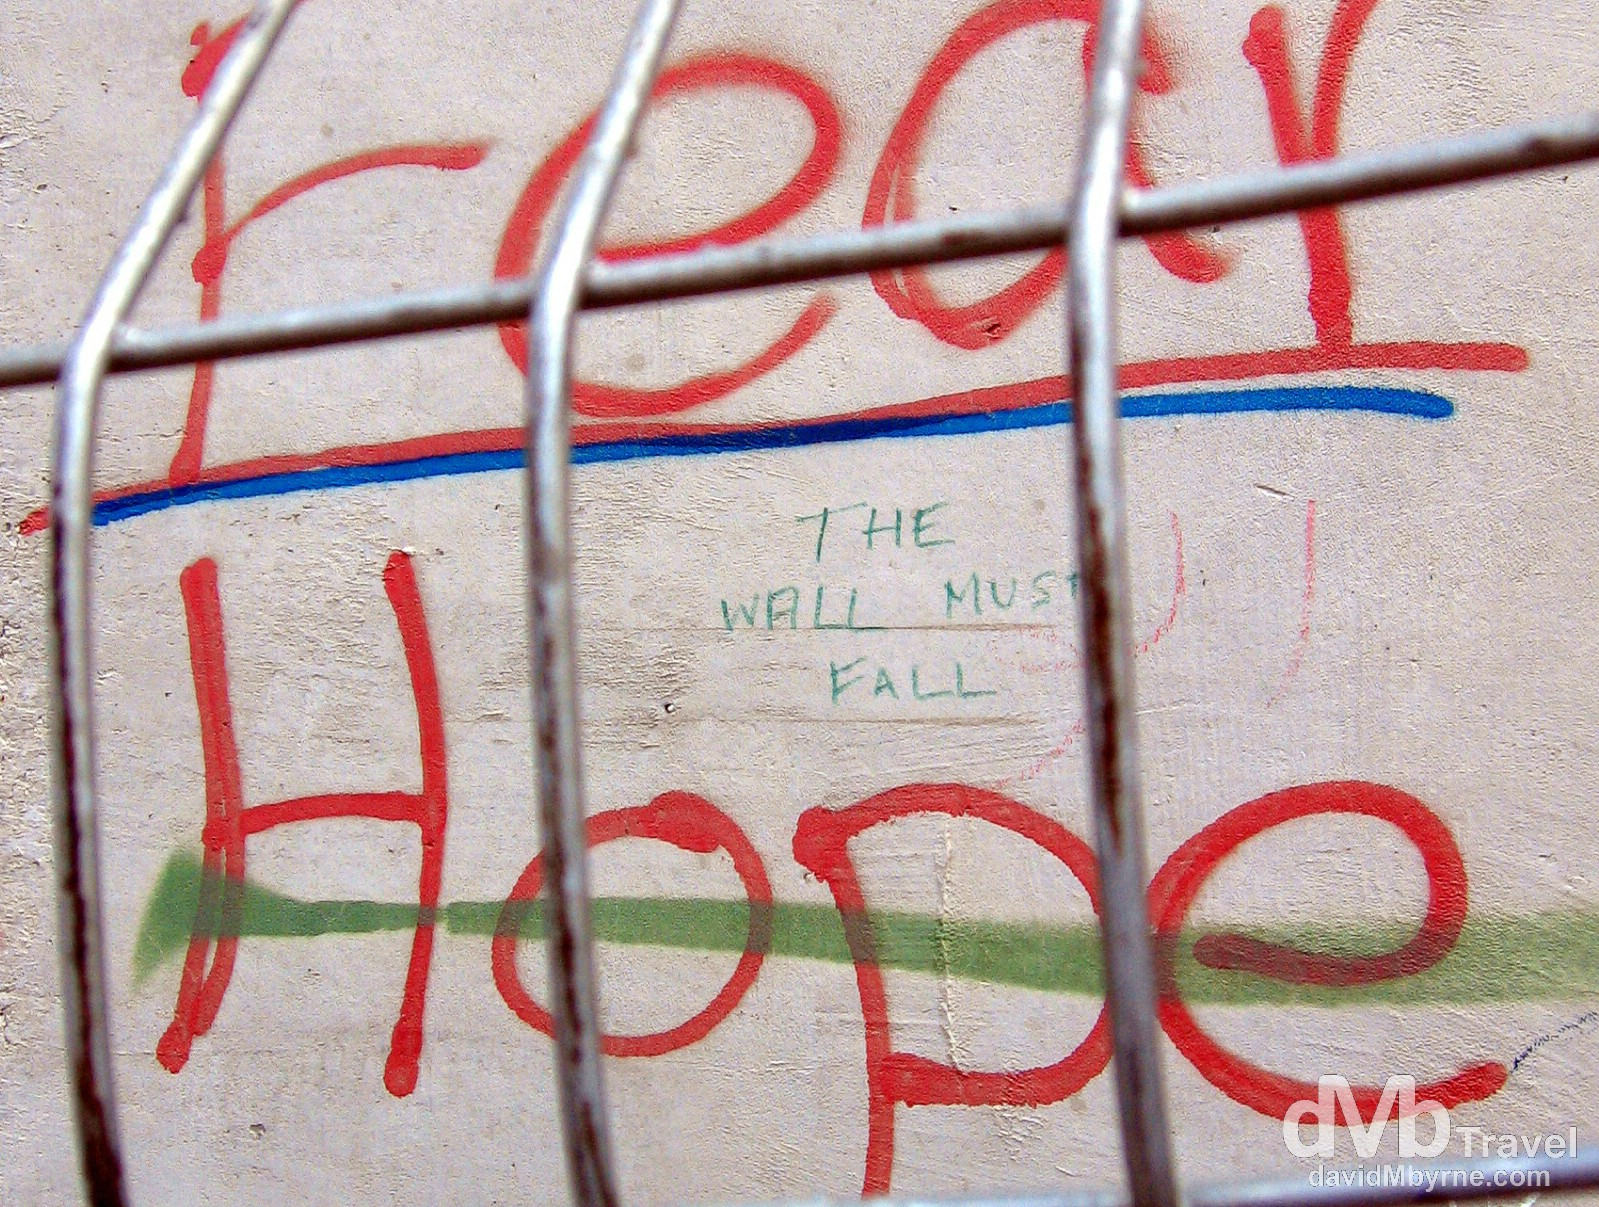 Fear. Hope. A section of the heavily guarded wall separating the Palestinian West Back from Israel. May 2, 2008.